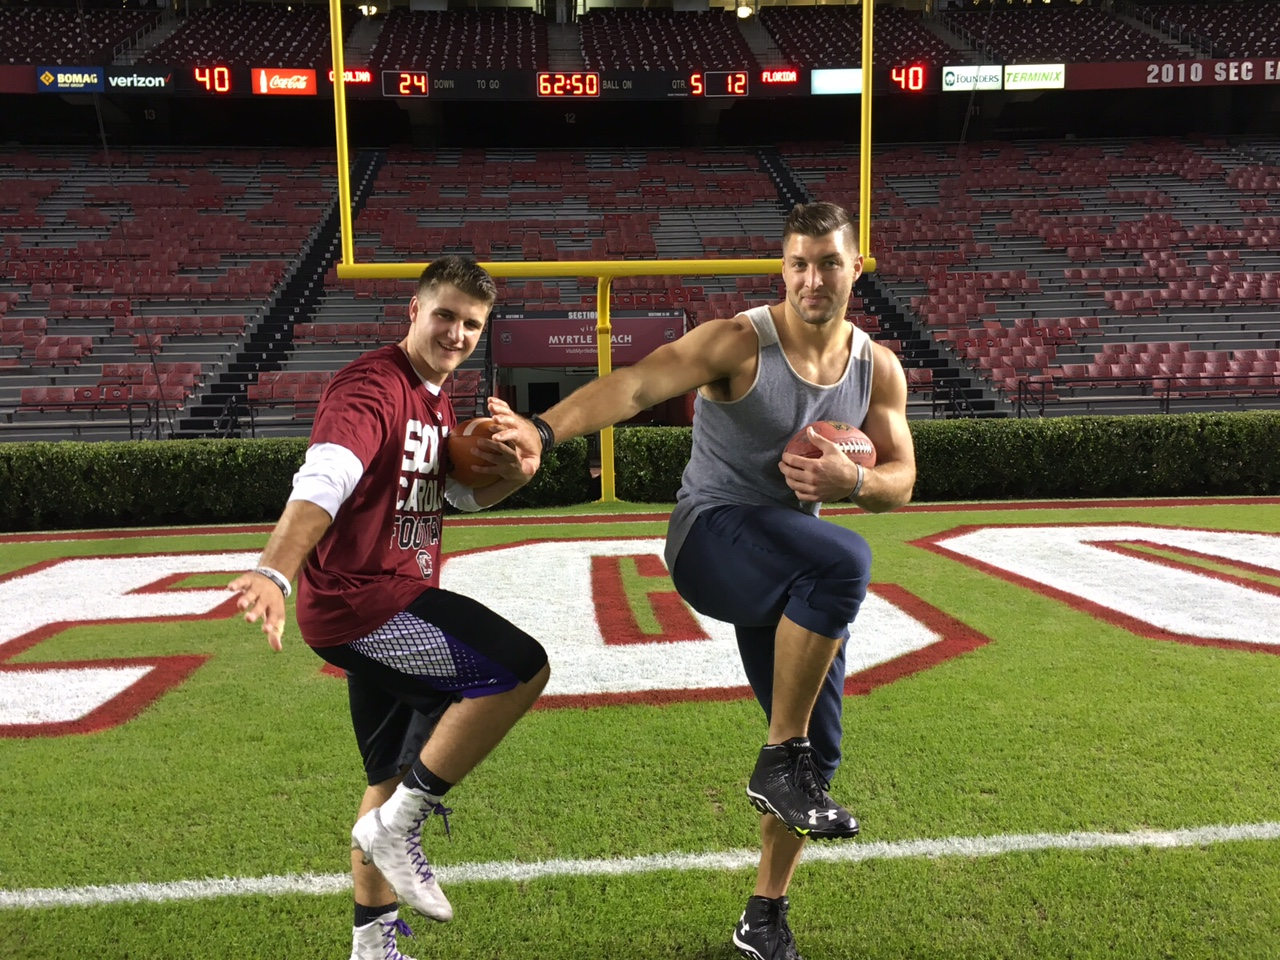 Freshman quarterback Jaden Barr performs the Heisman pose with former Heisman Trophy winner Tim Tebow at William-Brice Stadium at the University of South Carolina. Submitted by Jaden Barr